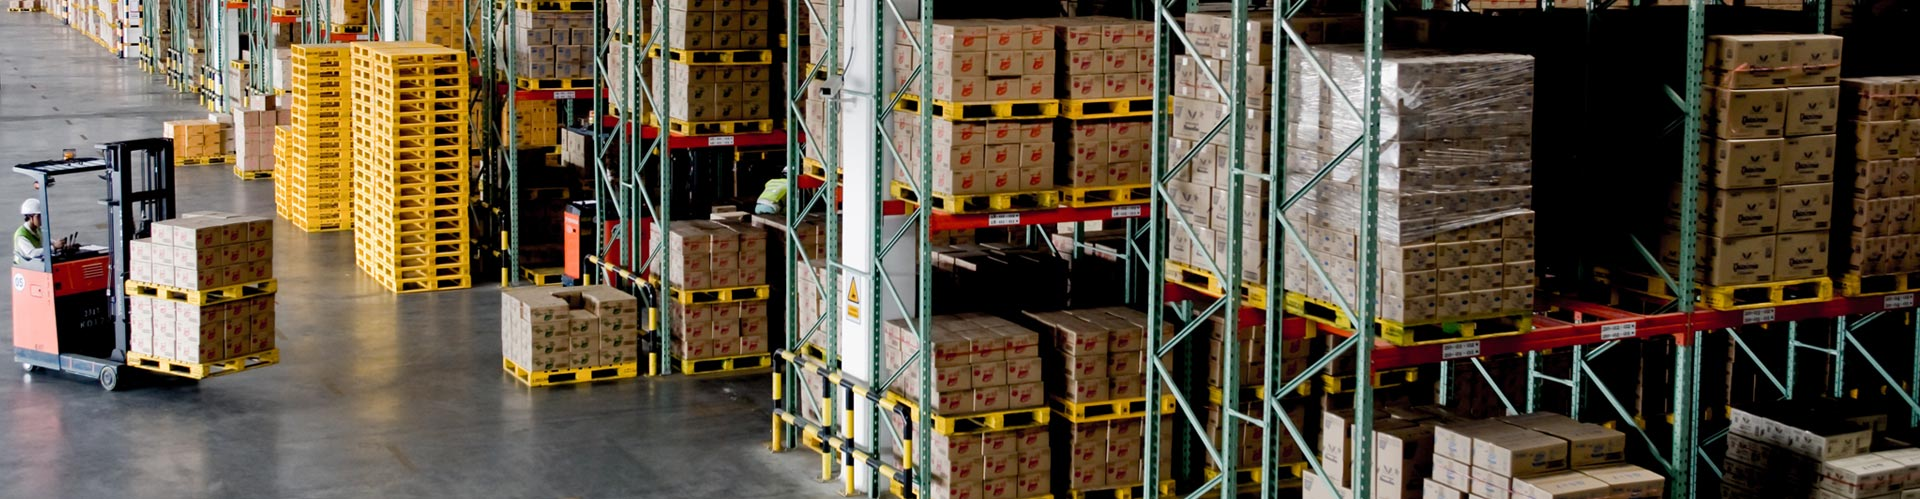 CGL Cohesion Global Warehousing & Distribution